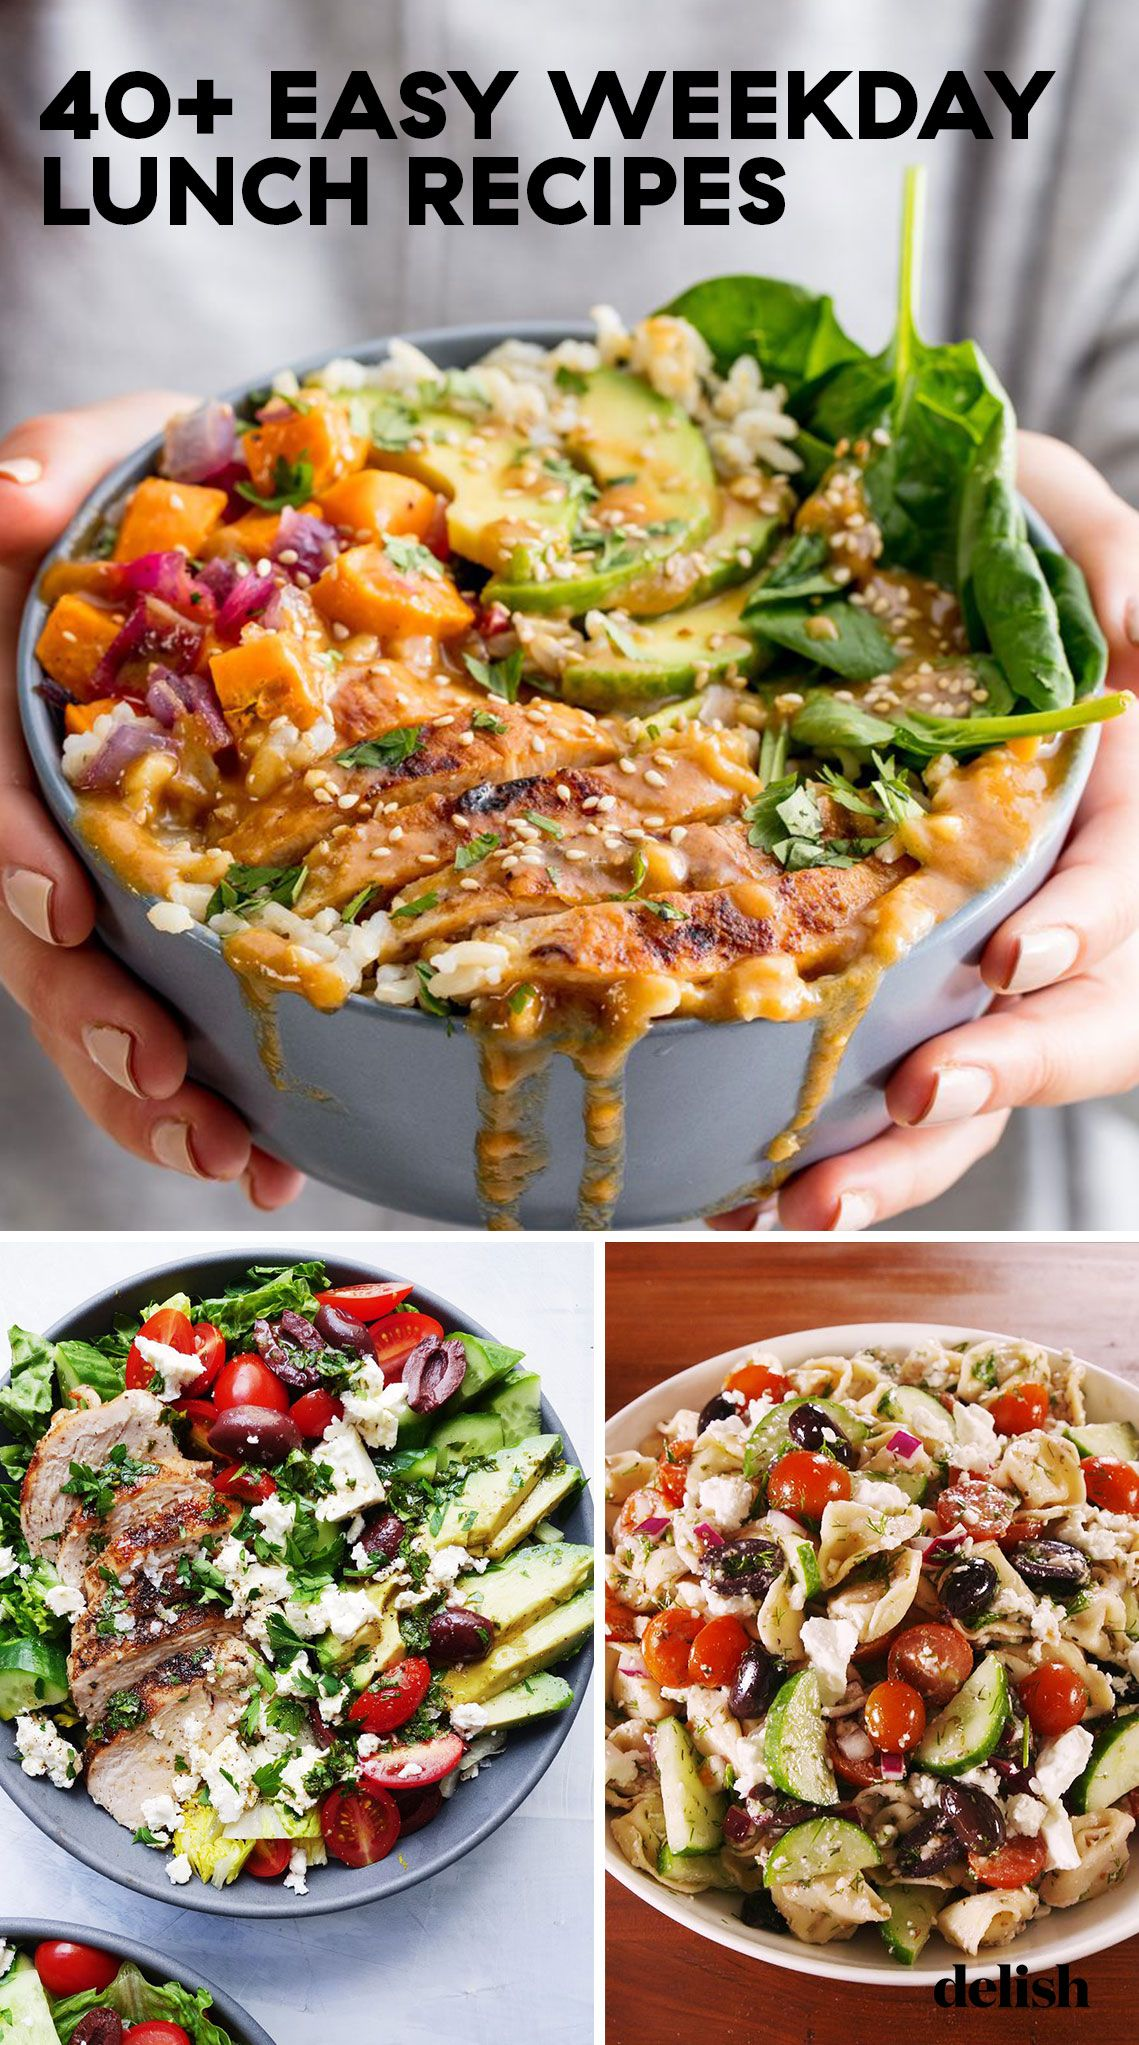 40+ Weekday Lunch Recipes images